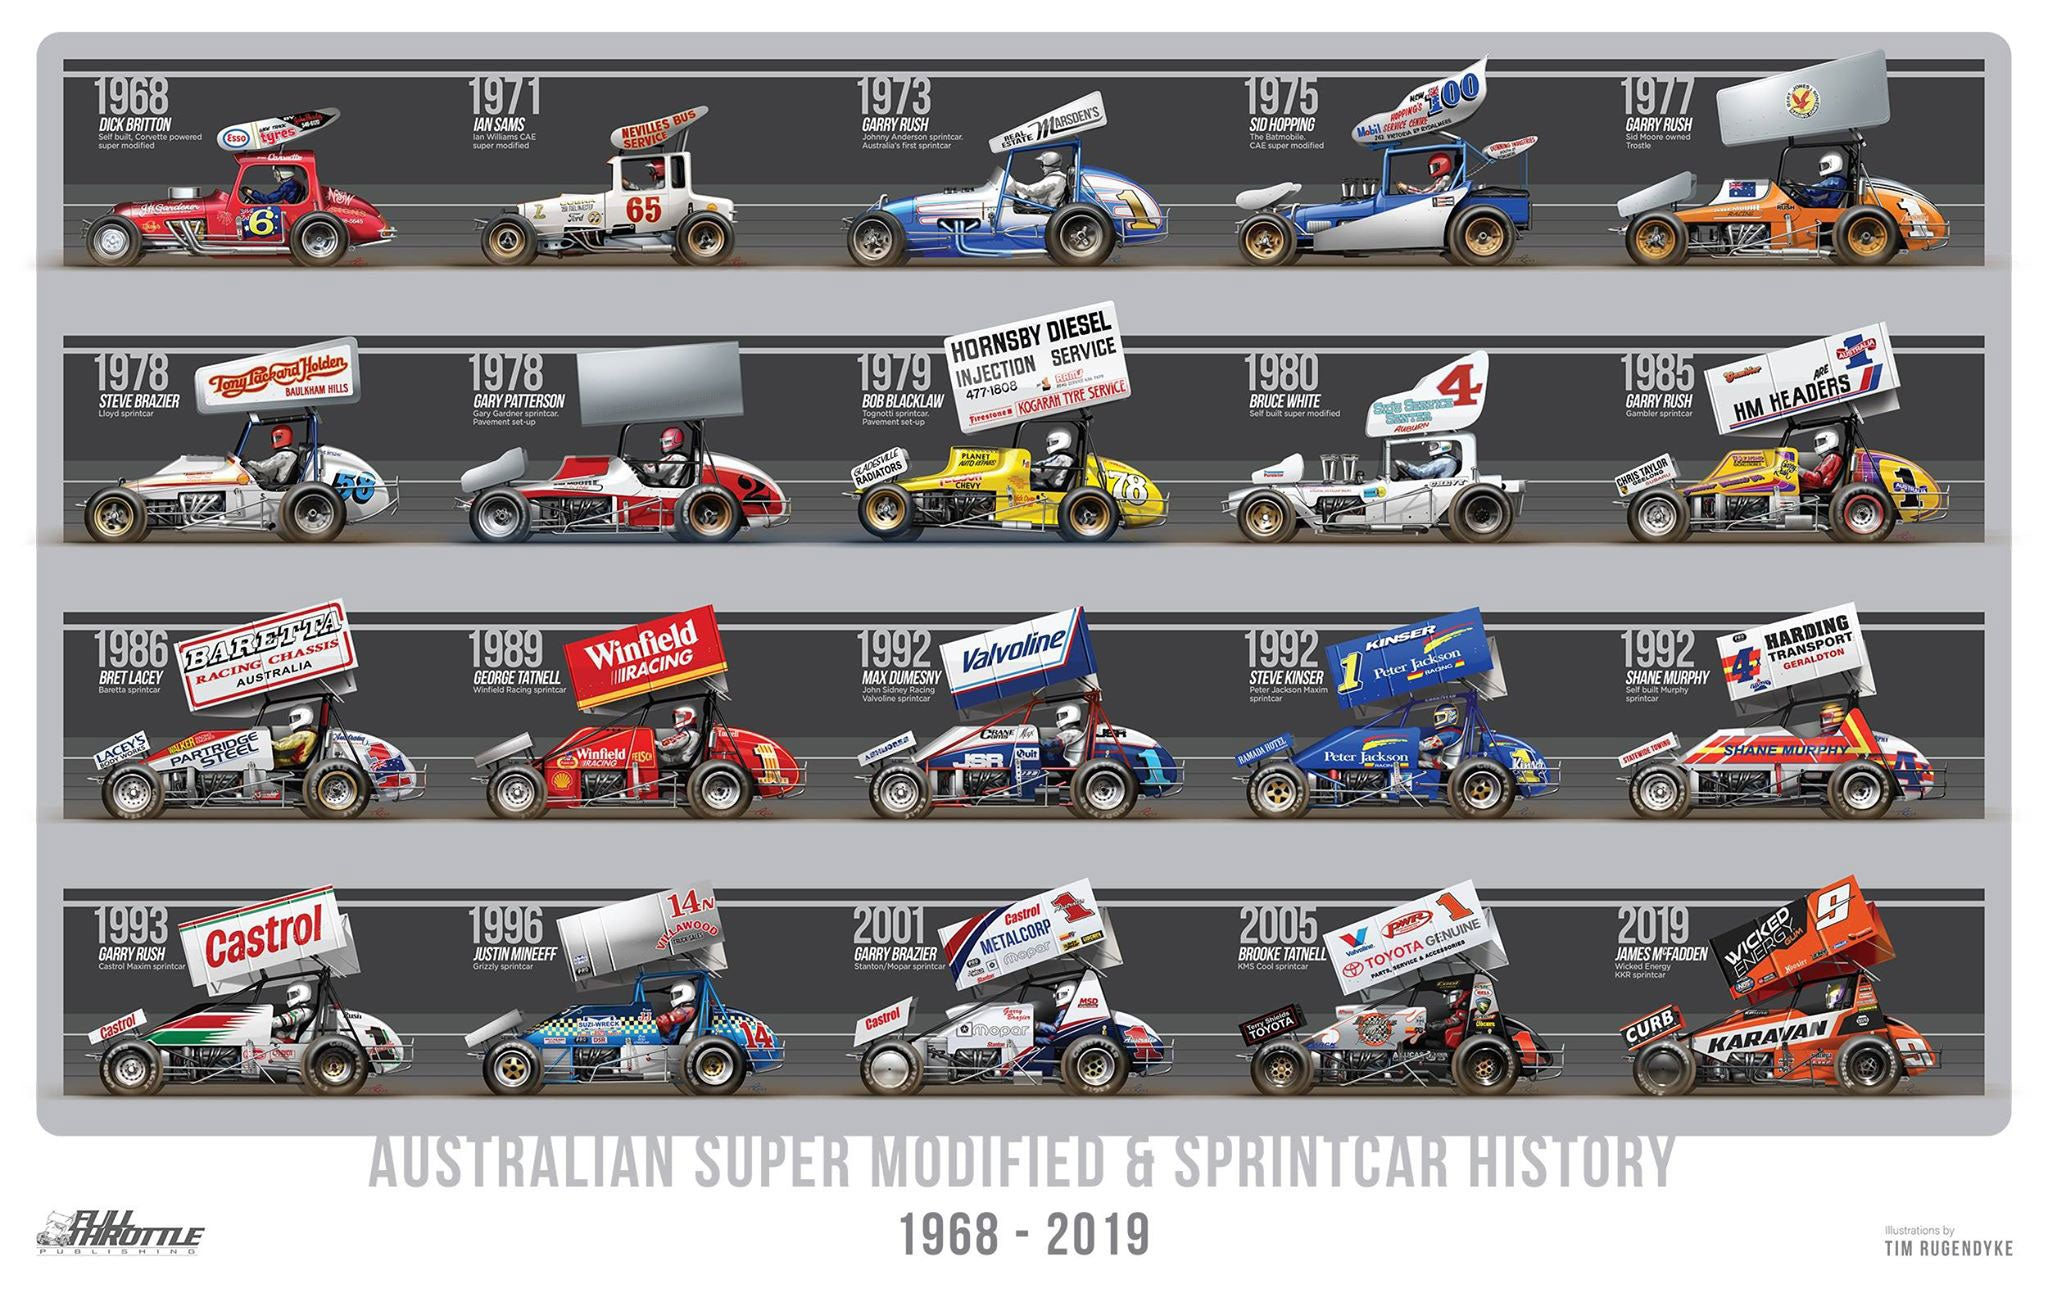 Limited Edition Super Modified and Sprintcar Poster